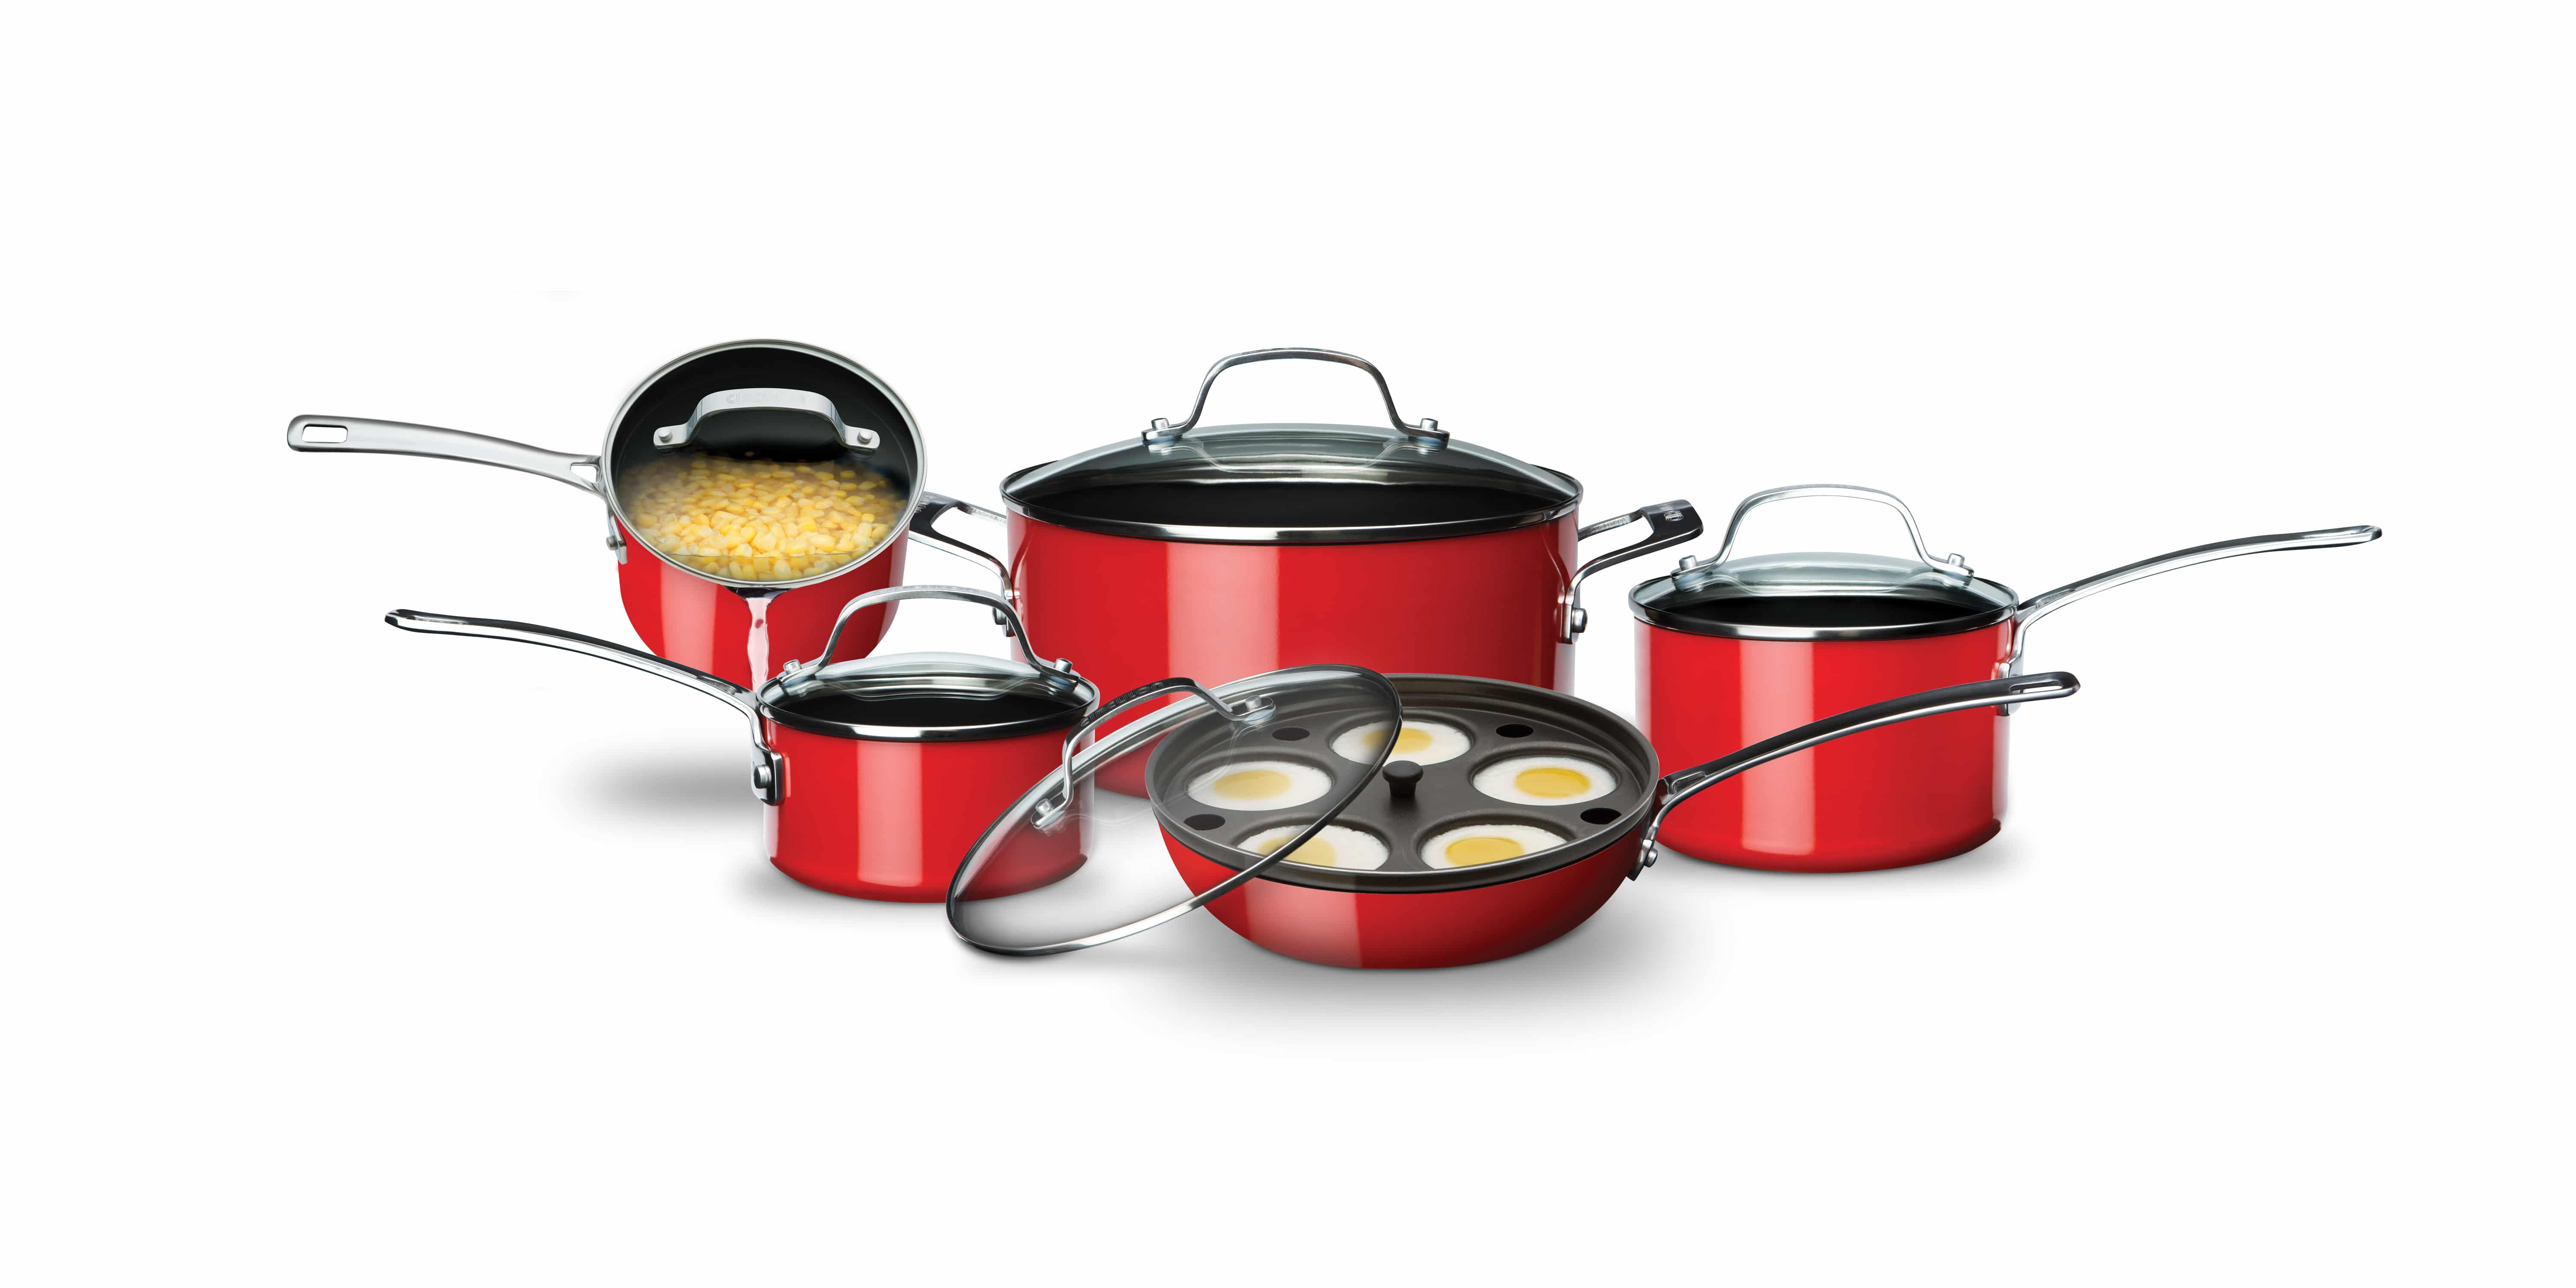 Top Kitchen Cookware Sets